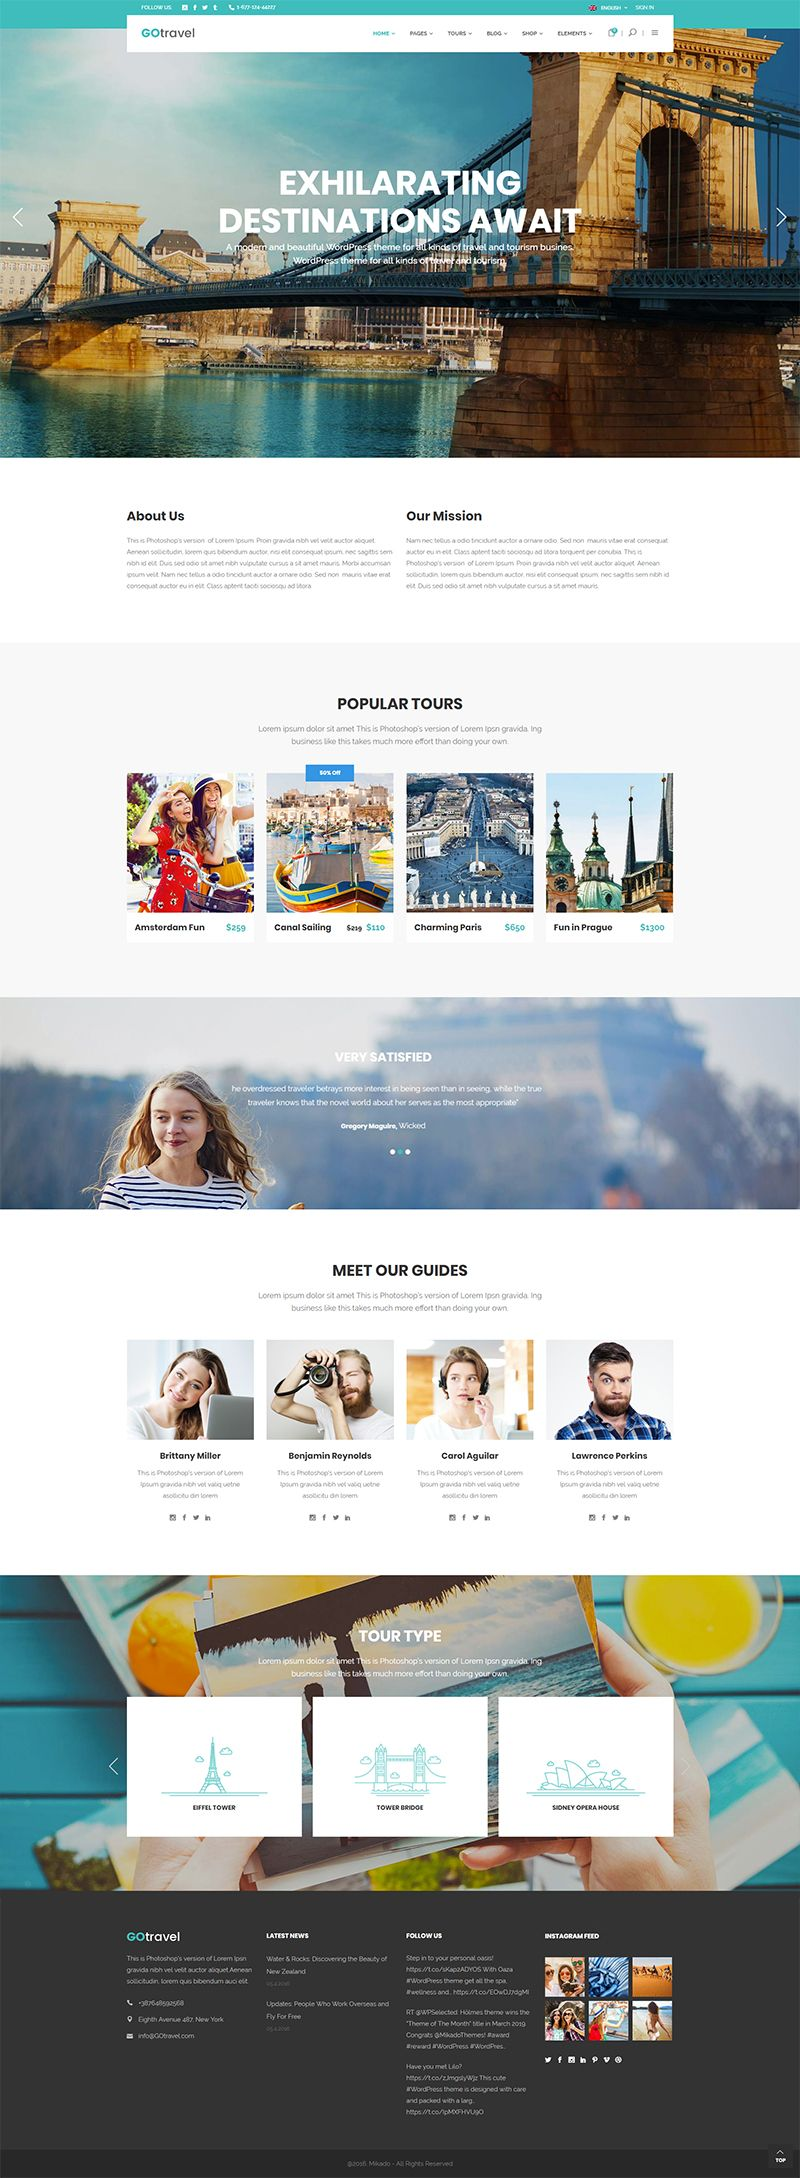 GoTravel WordPress theme comes packed with great features and